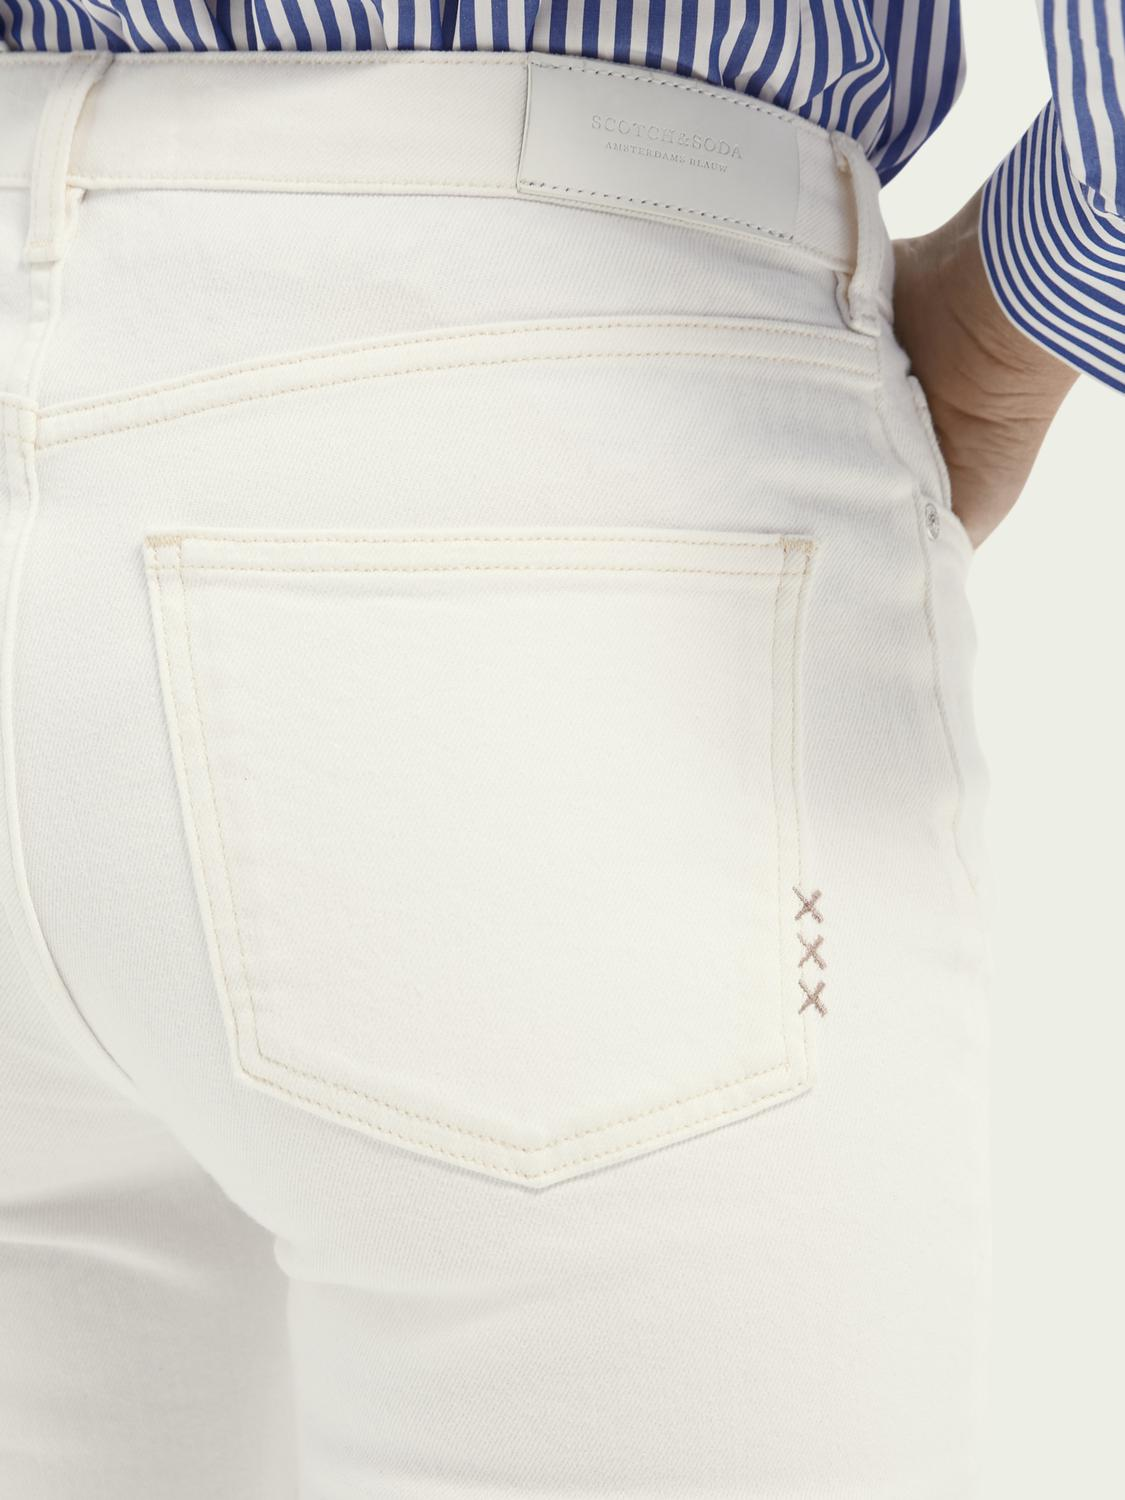 The Kick flared jeans — Summer White 5